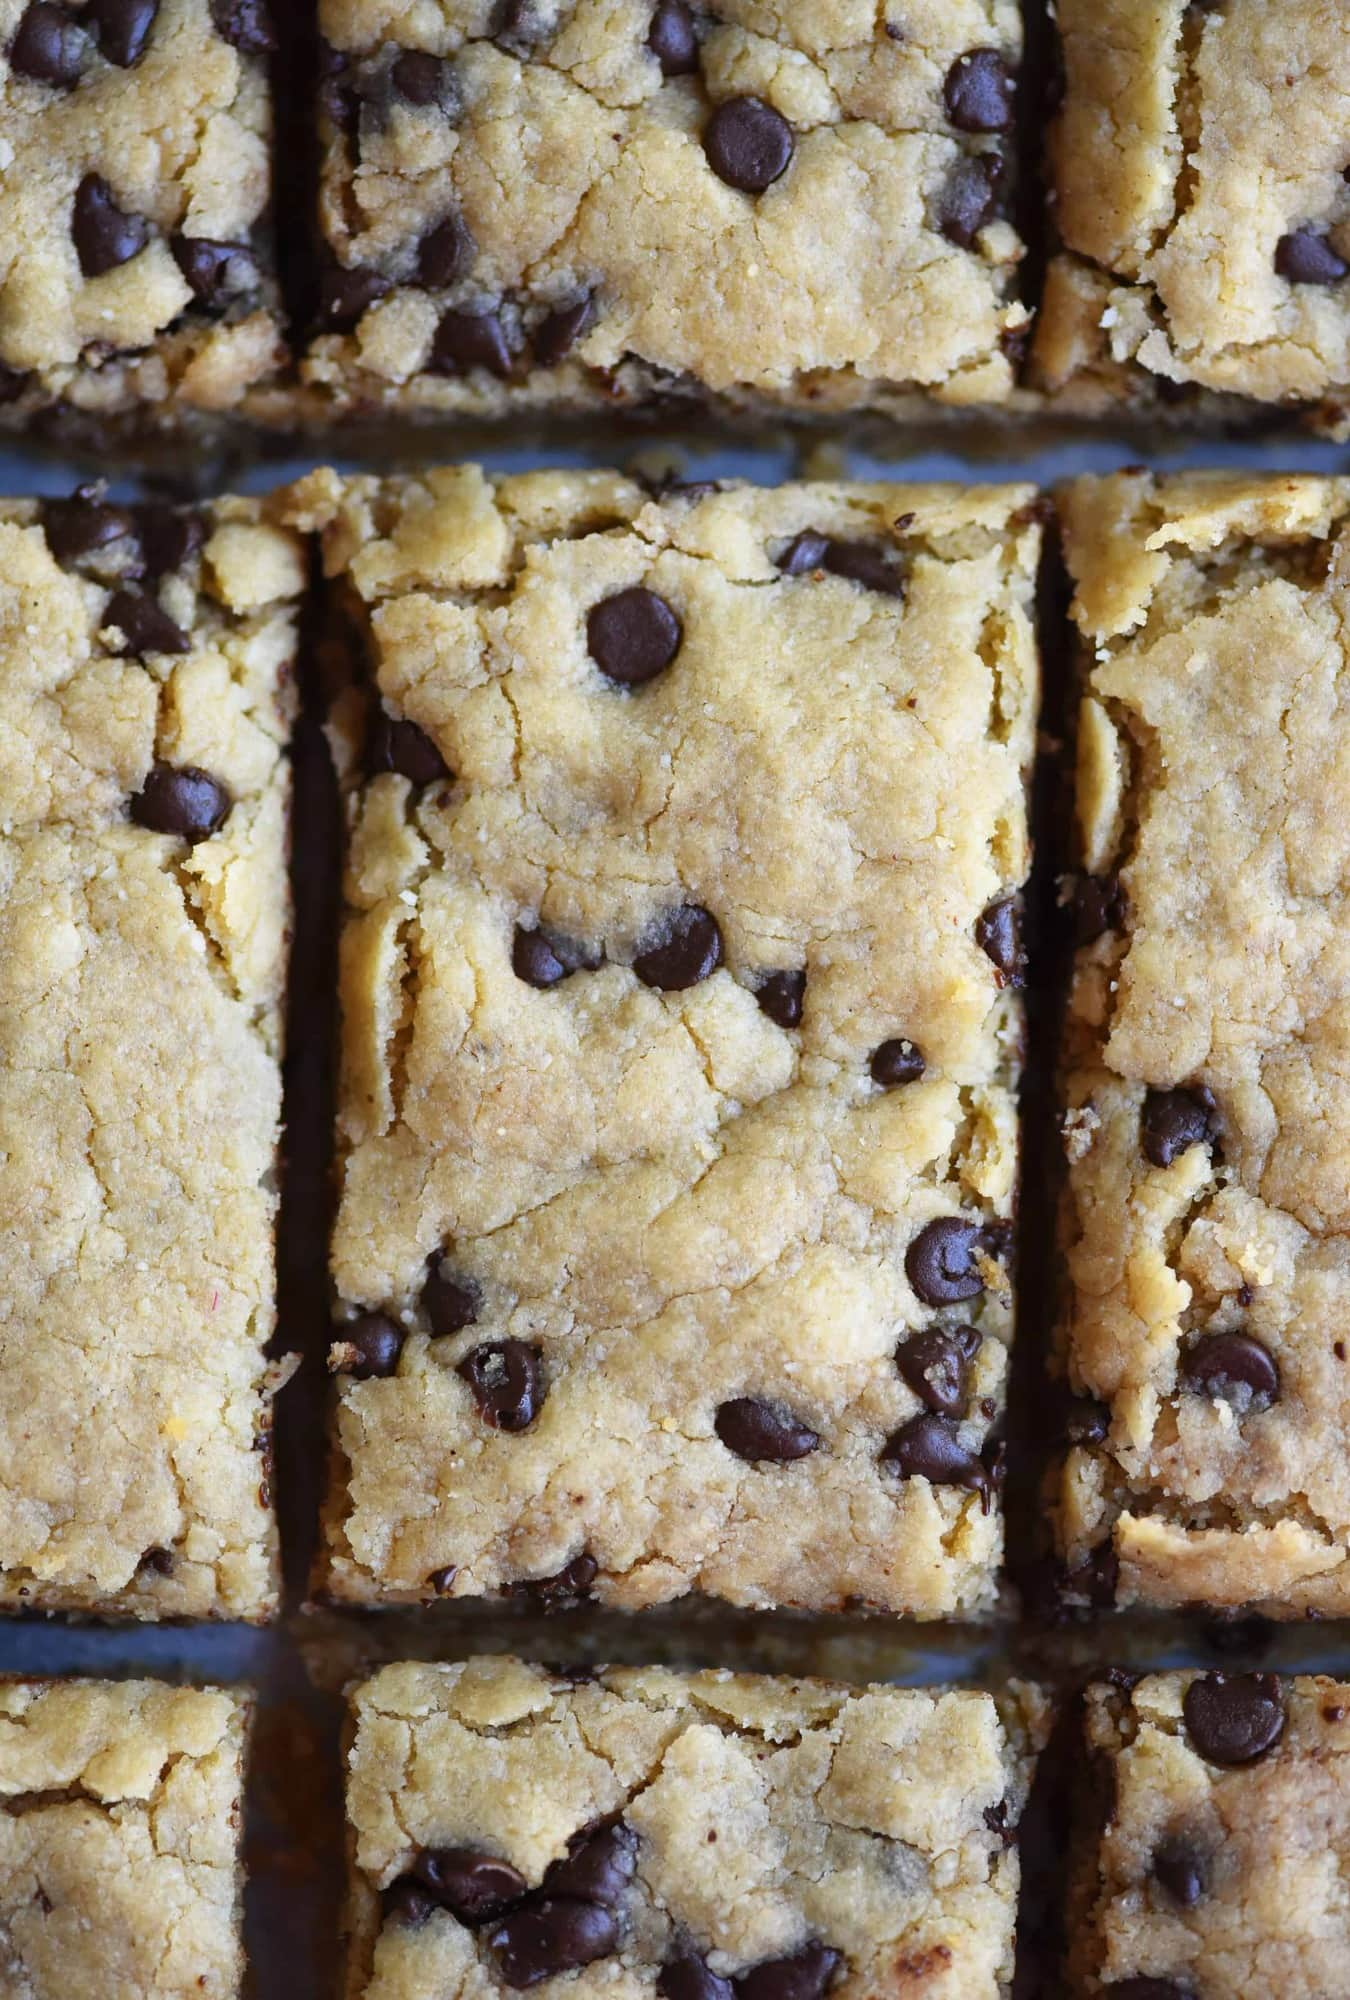 Overhead of chocolate chip cookie bar with bite taken out on a dark background